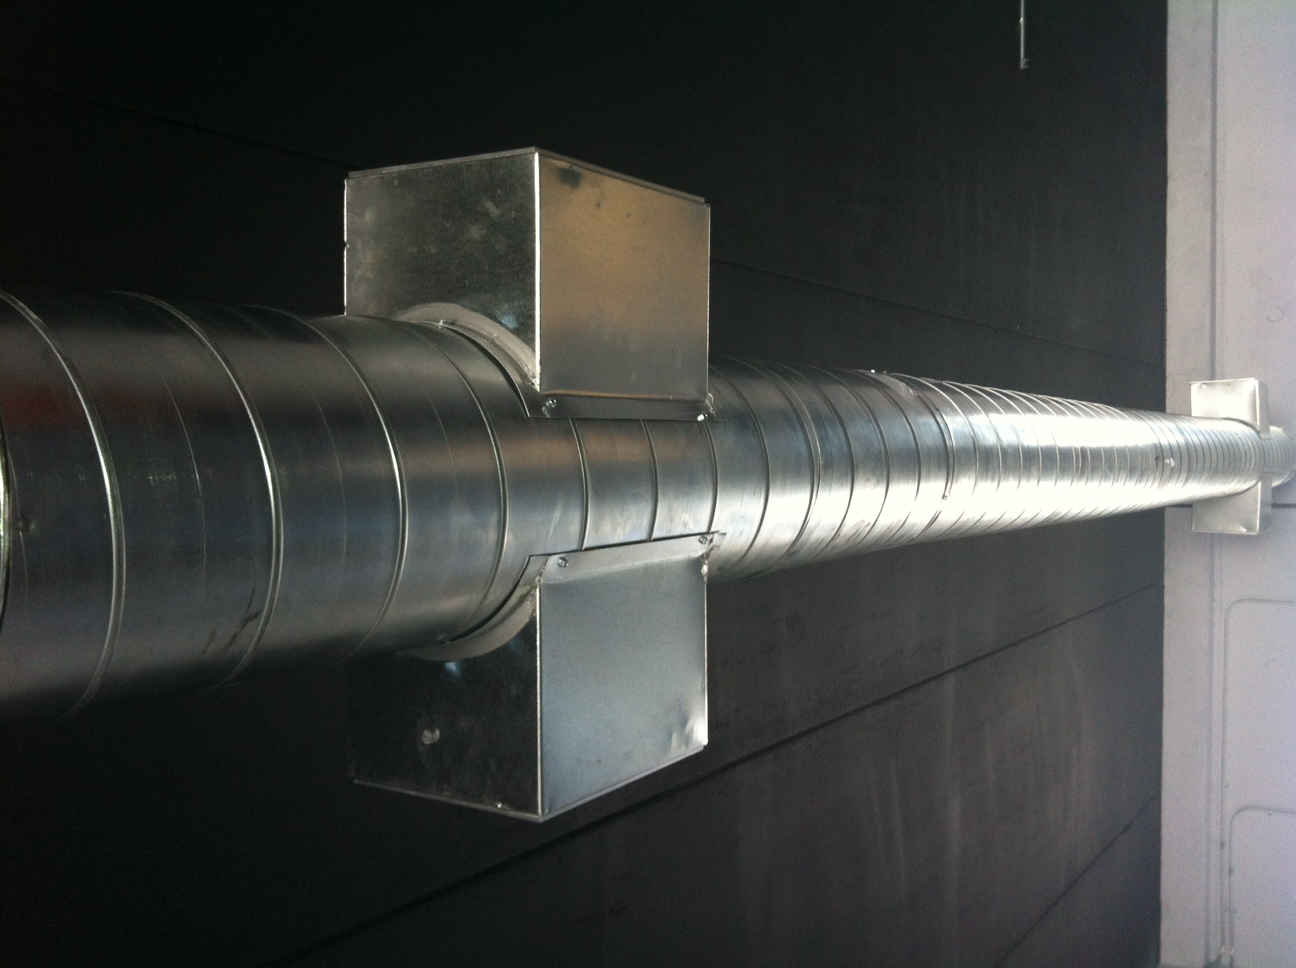 Exposed Spiral Duct : Spiral ductwork for your next project